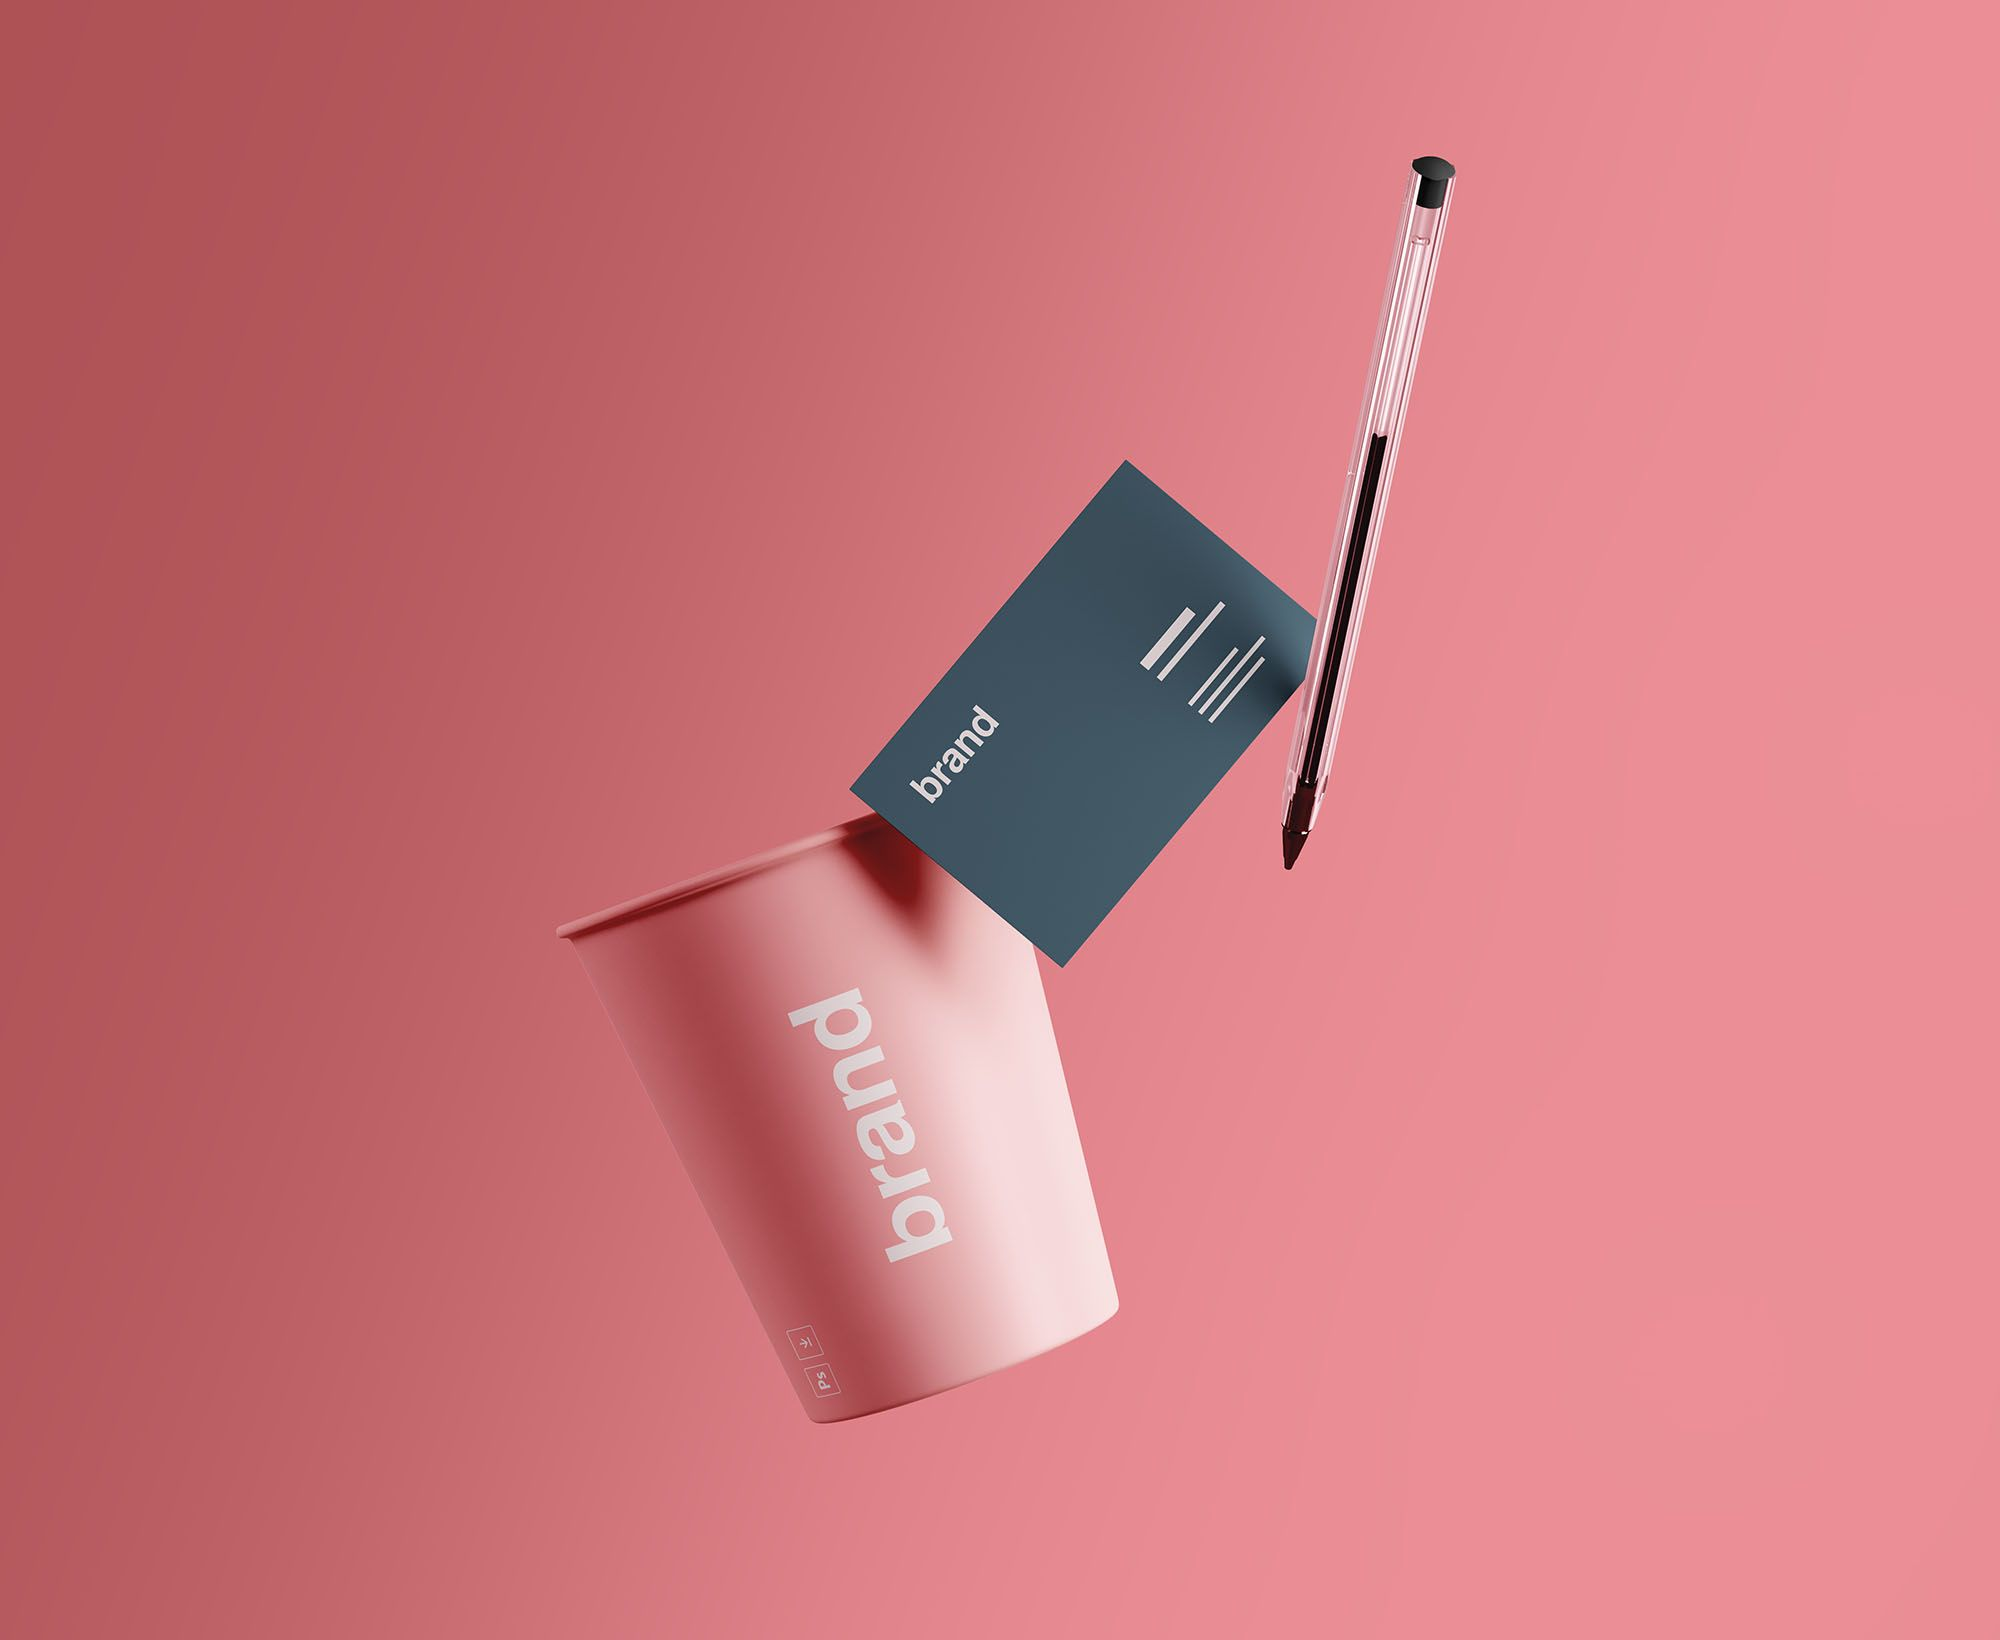 Cup with business card psd mockup download for free